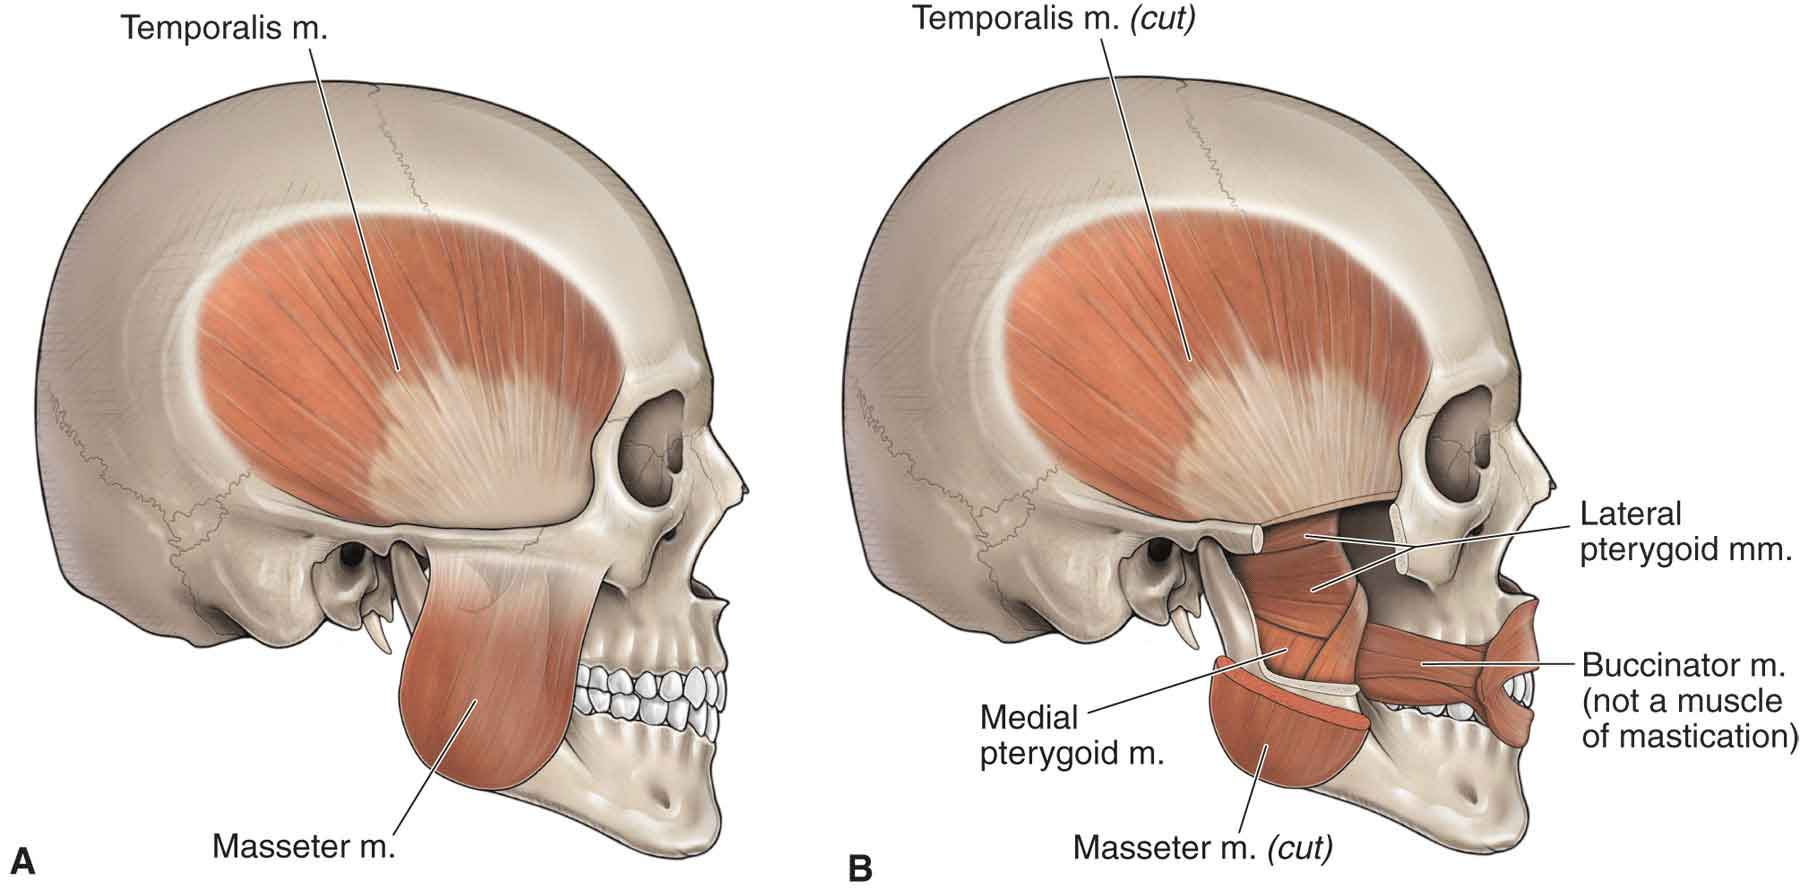 hight resolution of  of tmj reproduced with permission from chapter 21 infratemporal fossa in morton da foreman k albertine kh eds the big picture gross anatomy